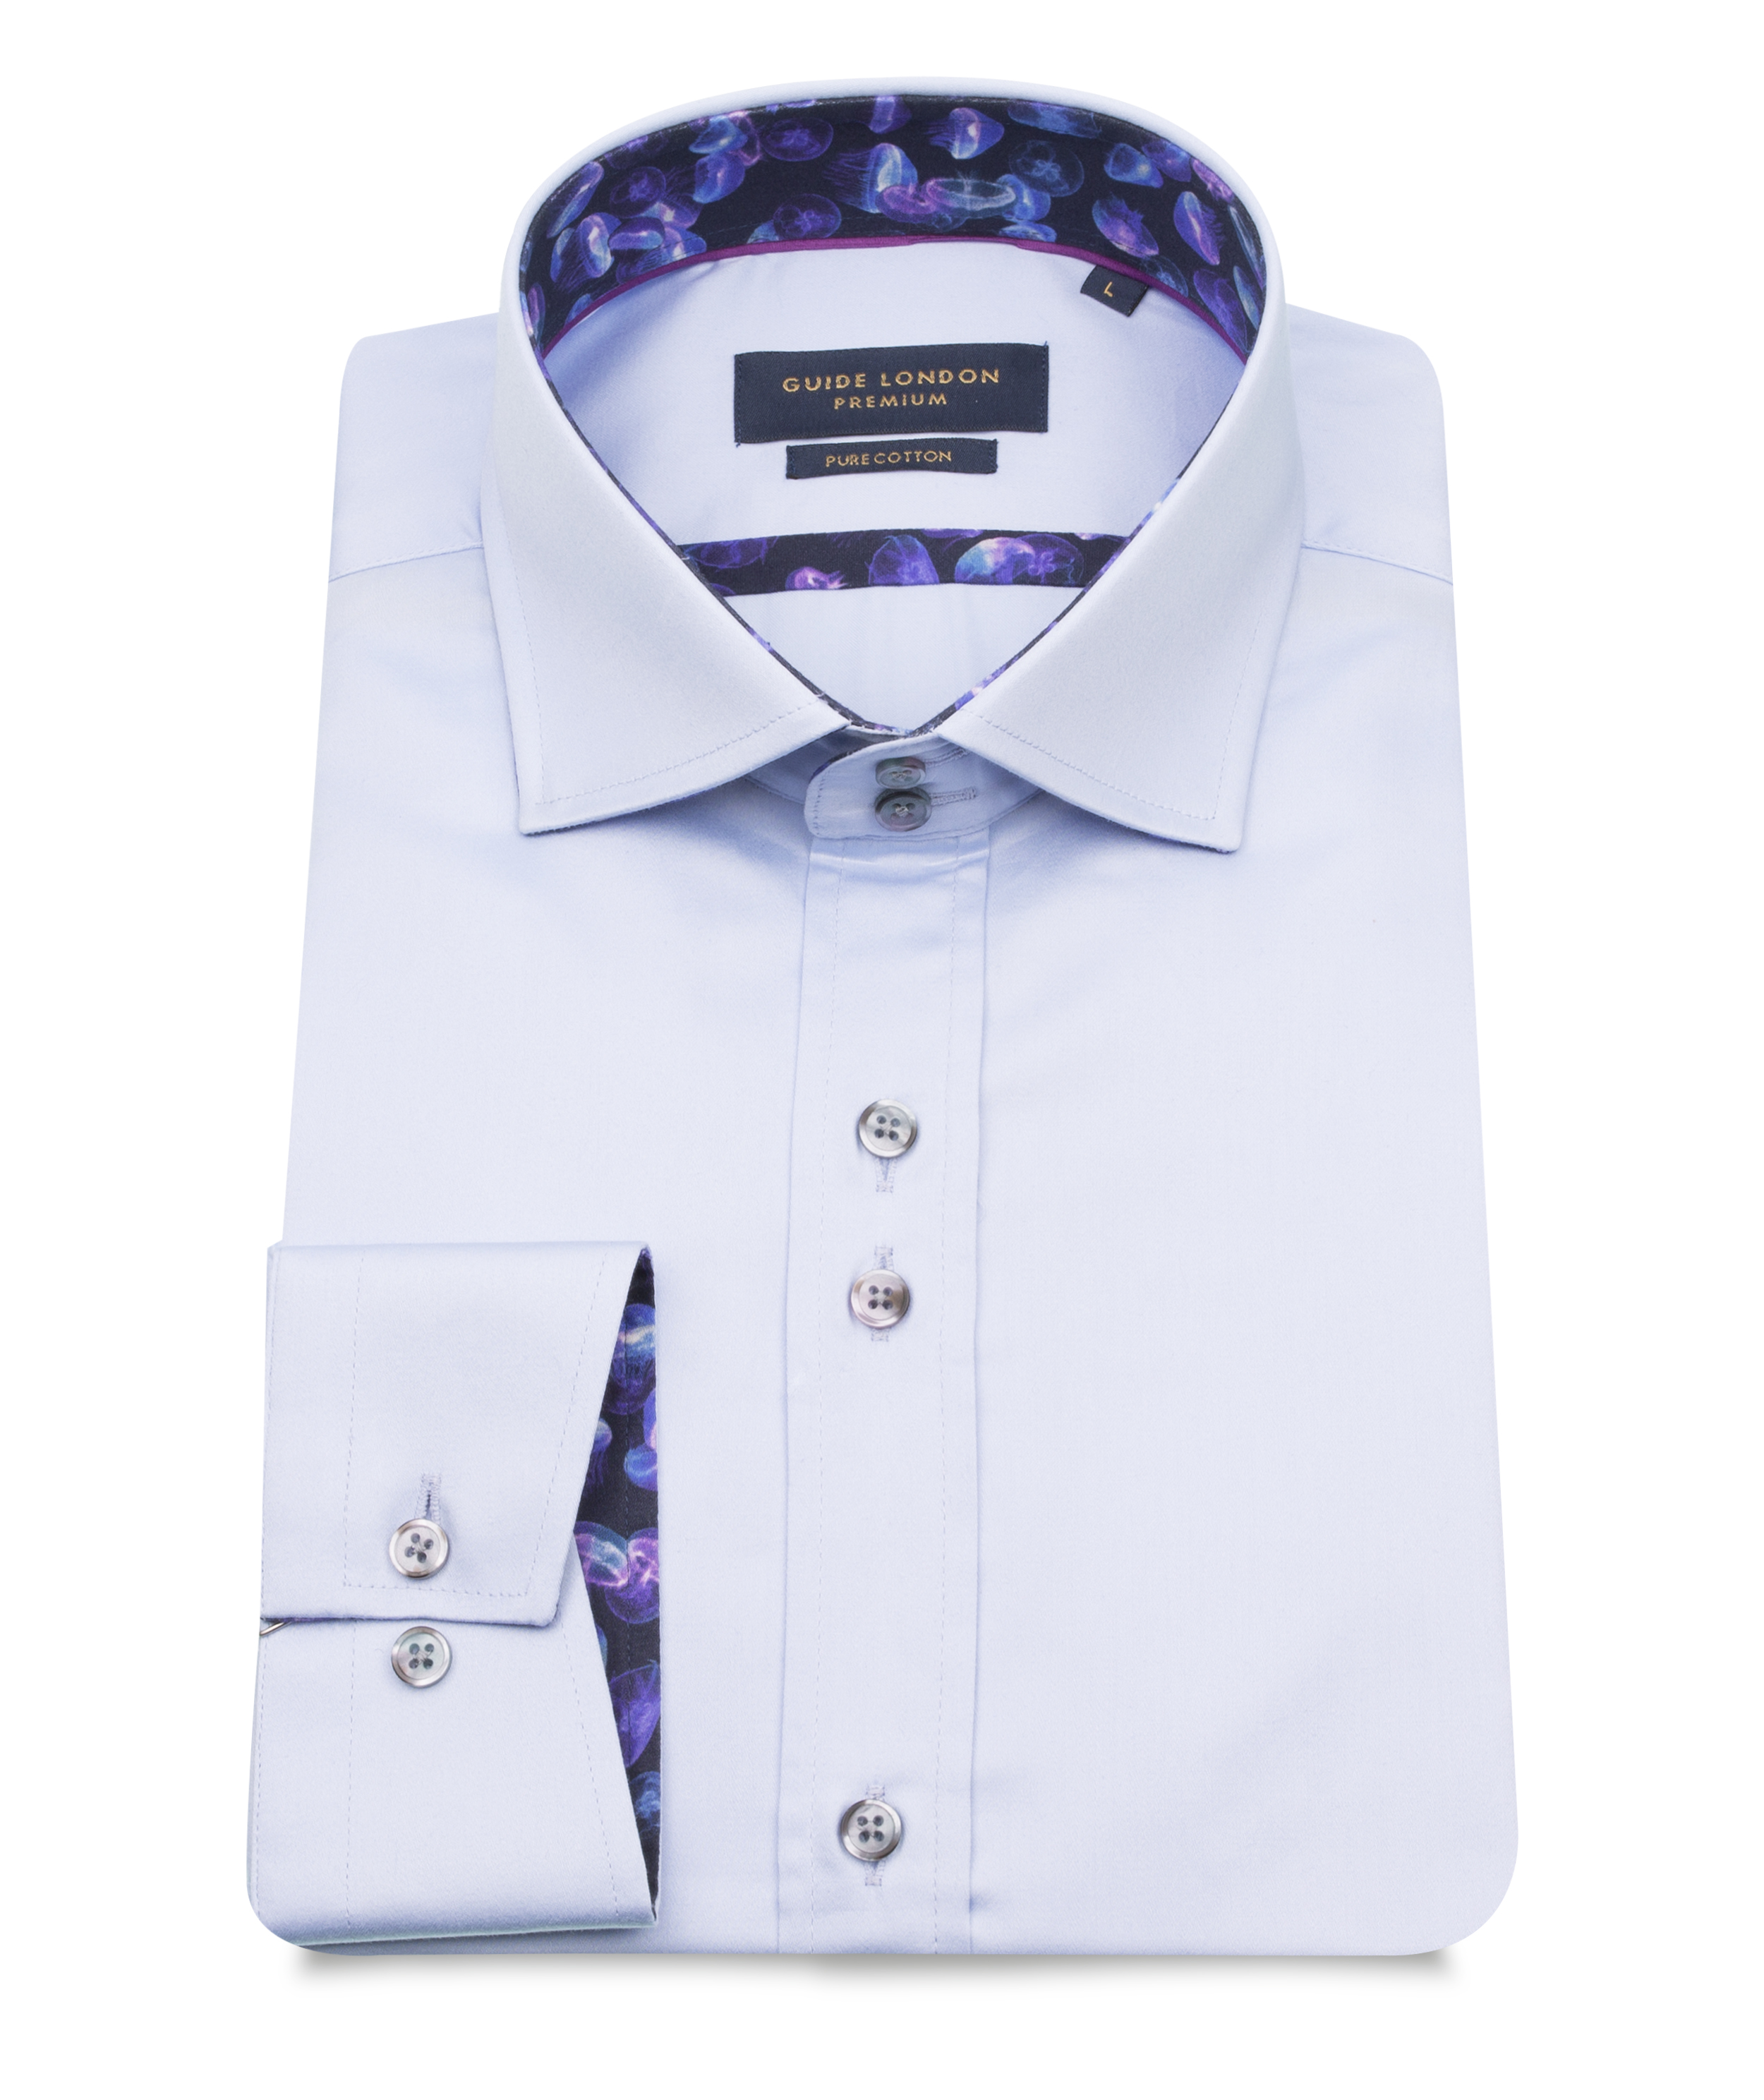 Guide London – LS75303 Shirt – Sky